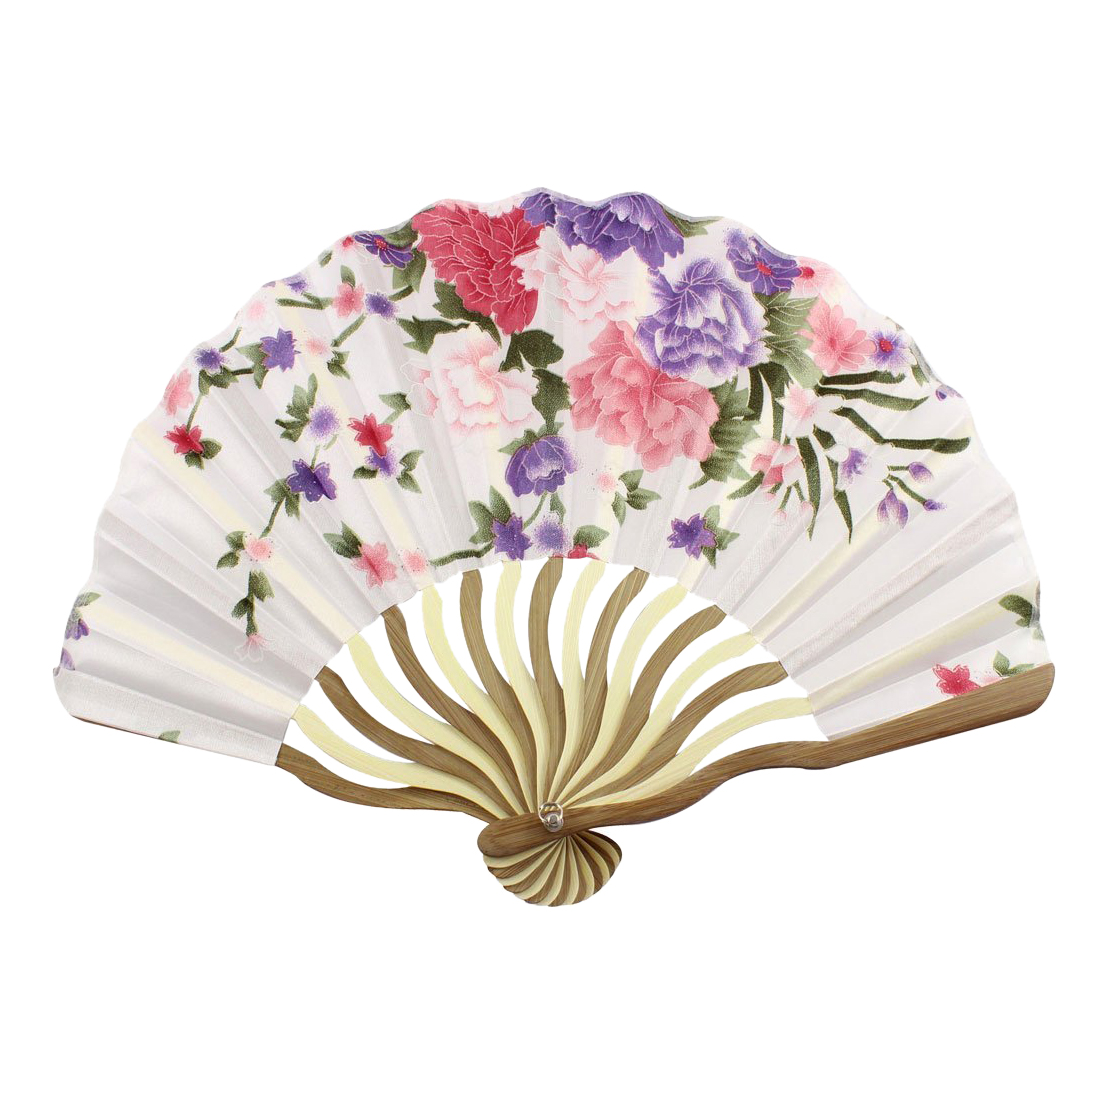 Hot Sale Bamboo Flower Printed Japanese Style Foldable Hand Held Fan Gift Decor